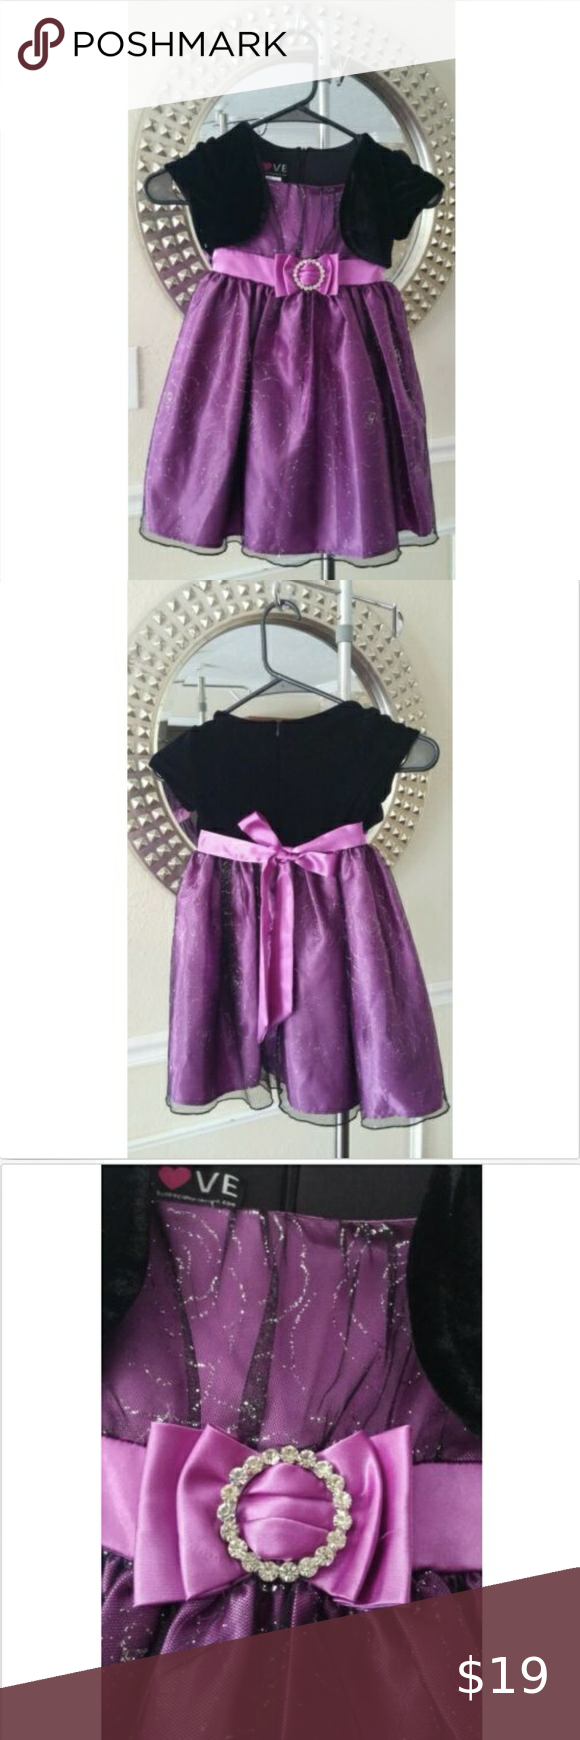 Baby Girl Dress 4t Purple Love Special Occassions Baby Girl Dress Girls Dresses 4t Dress [ 1740 x 580 Pixel ]